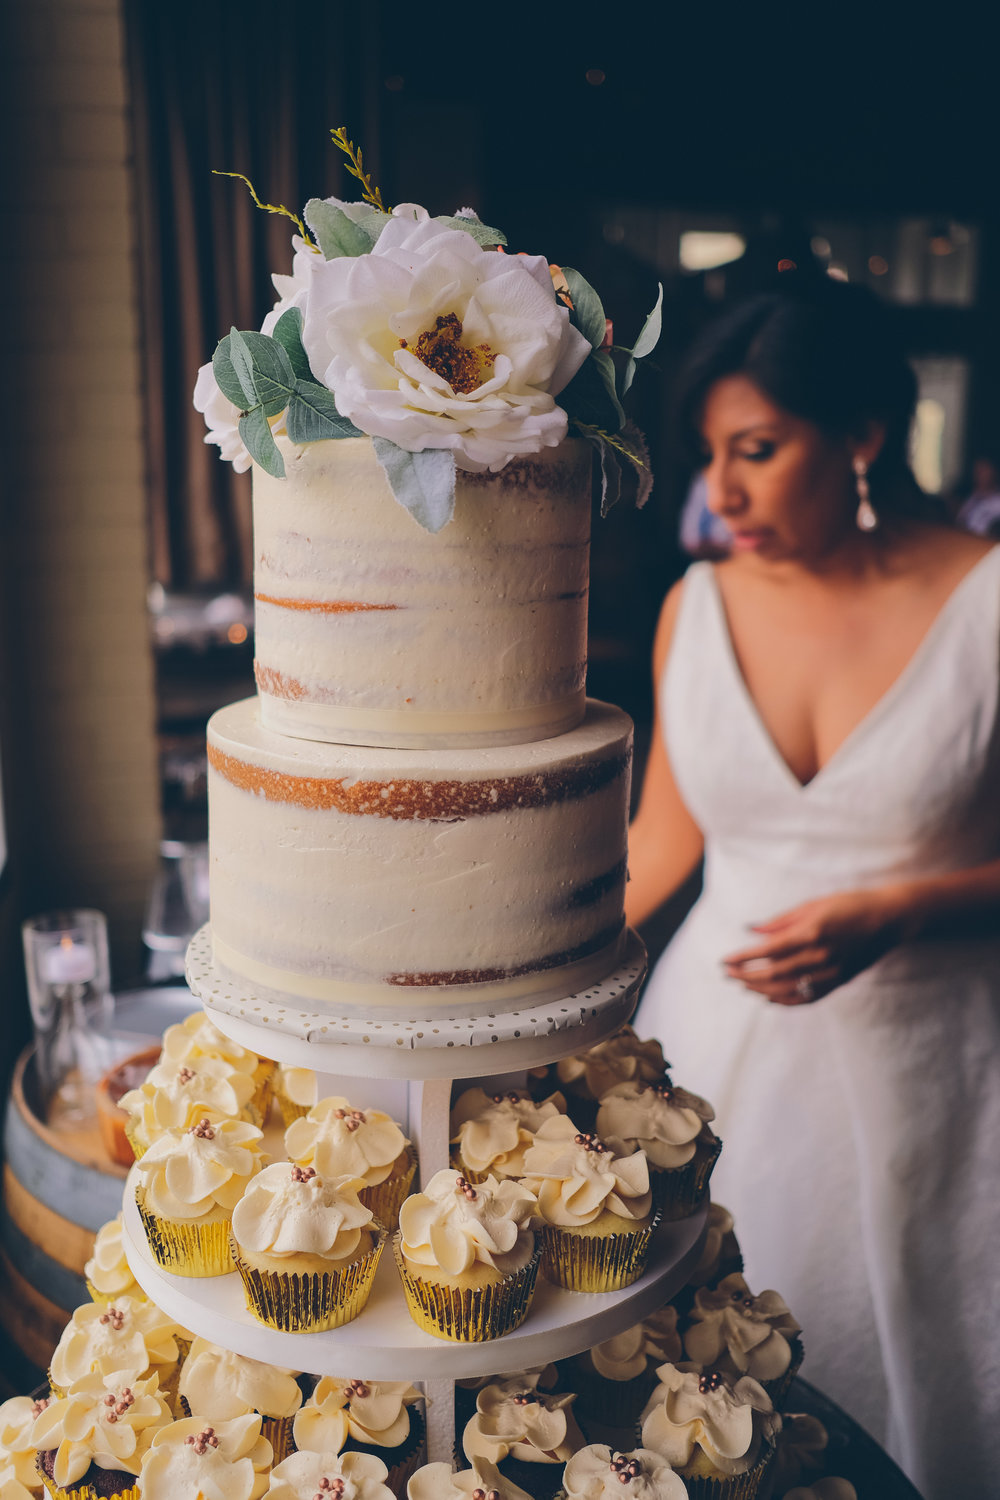 Color photo  with wedding cake in foreground and bride out of focus in background.